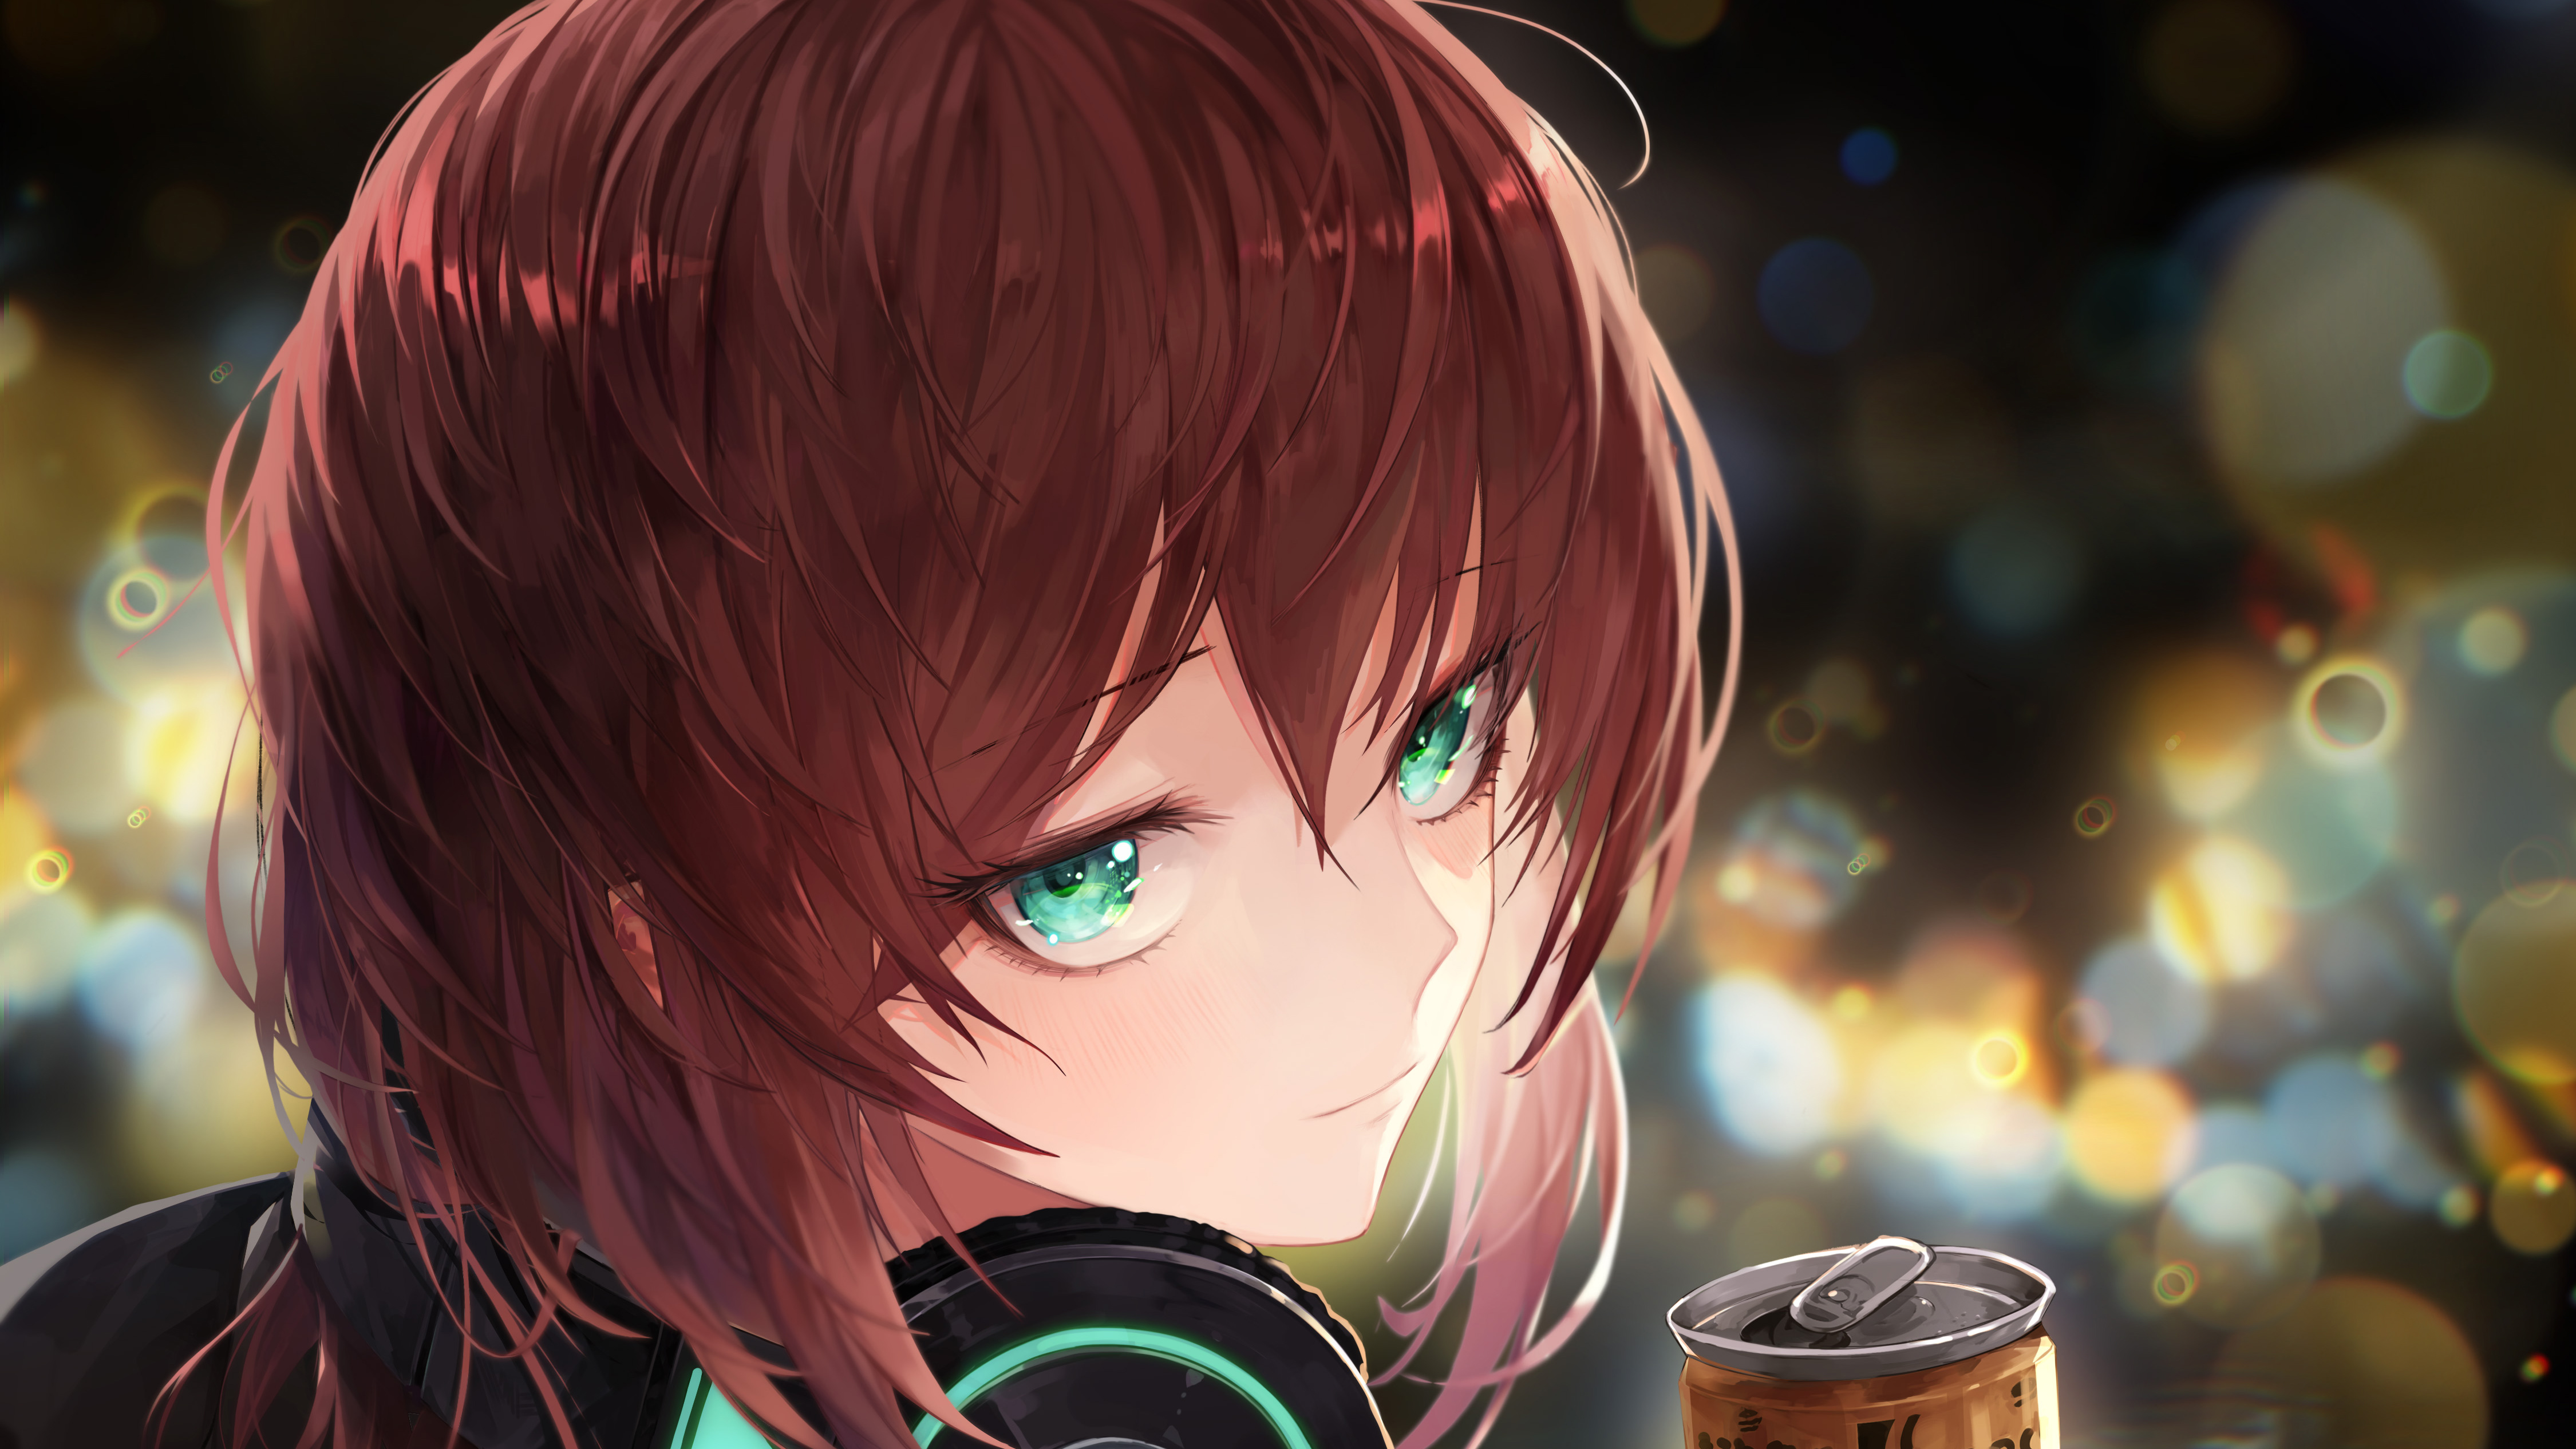 Anime green eyes 5k hd anime 4k wallpapers images - 5k anime wallpaper ...